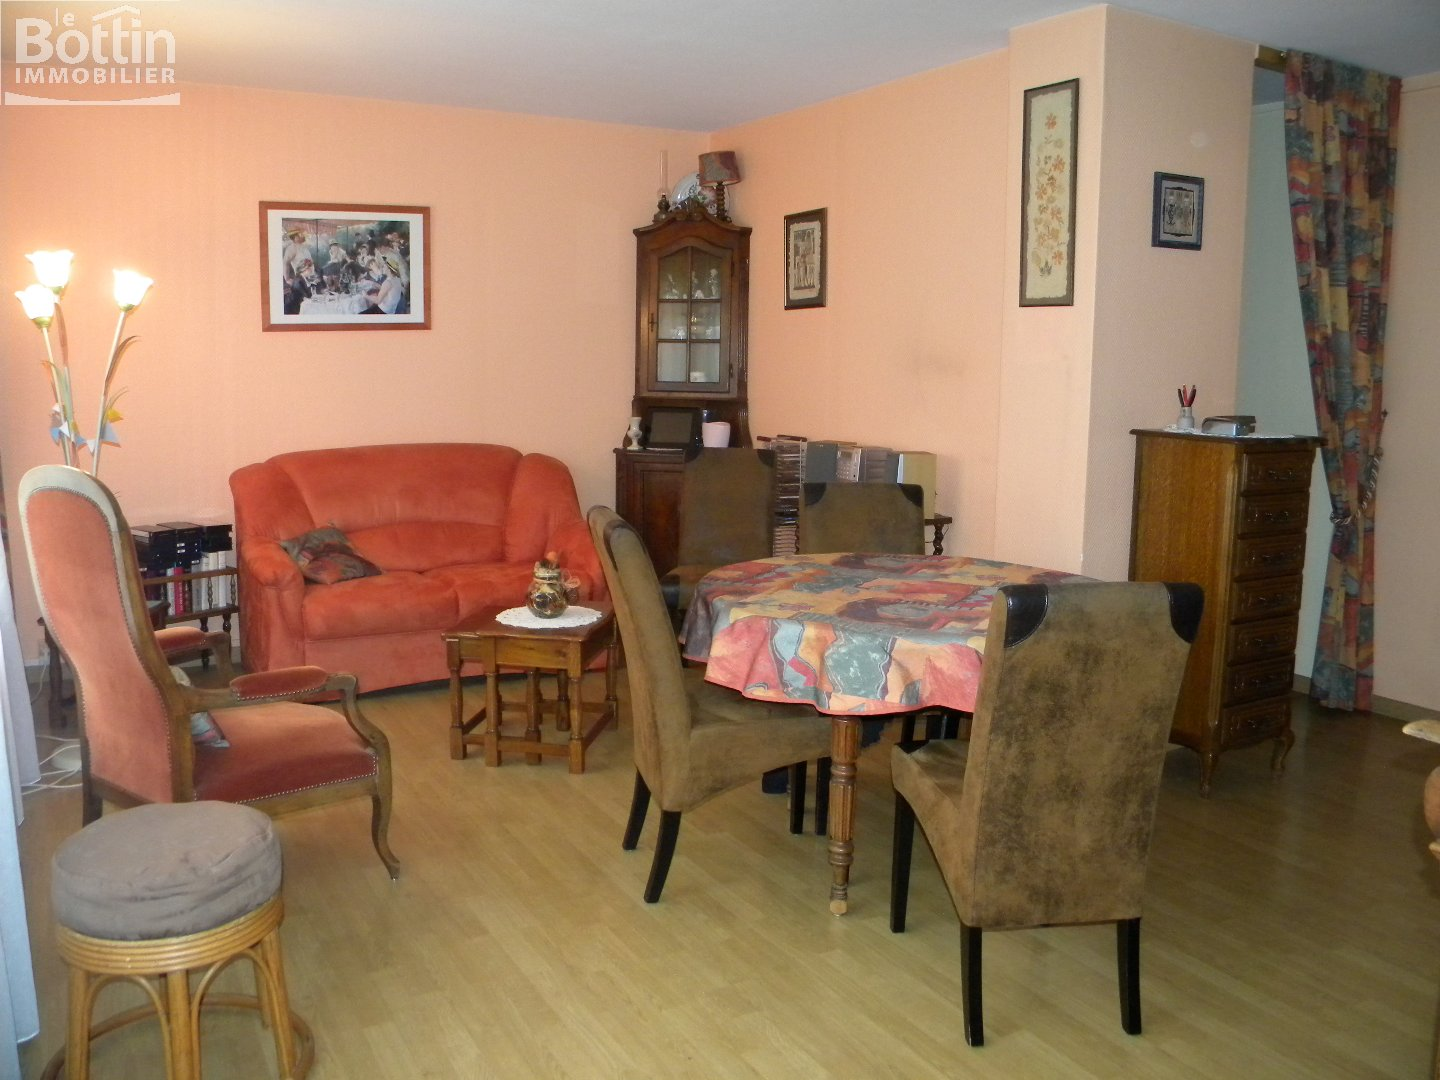 AMIENS SUD APPARTEMENT 2 CHAMBRES